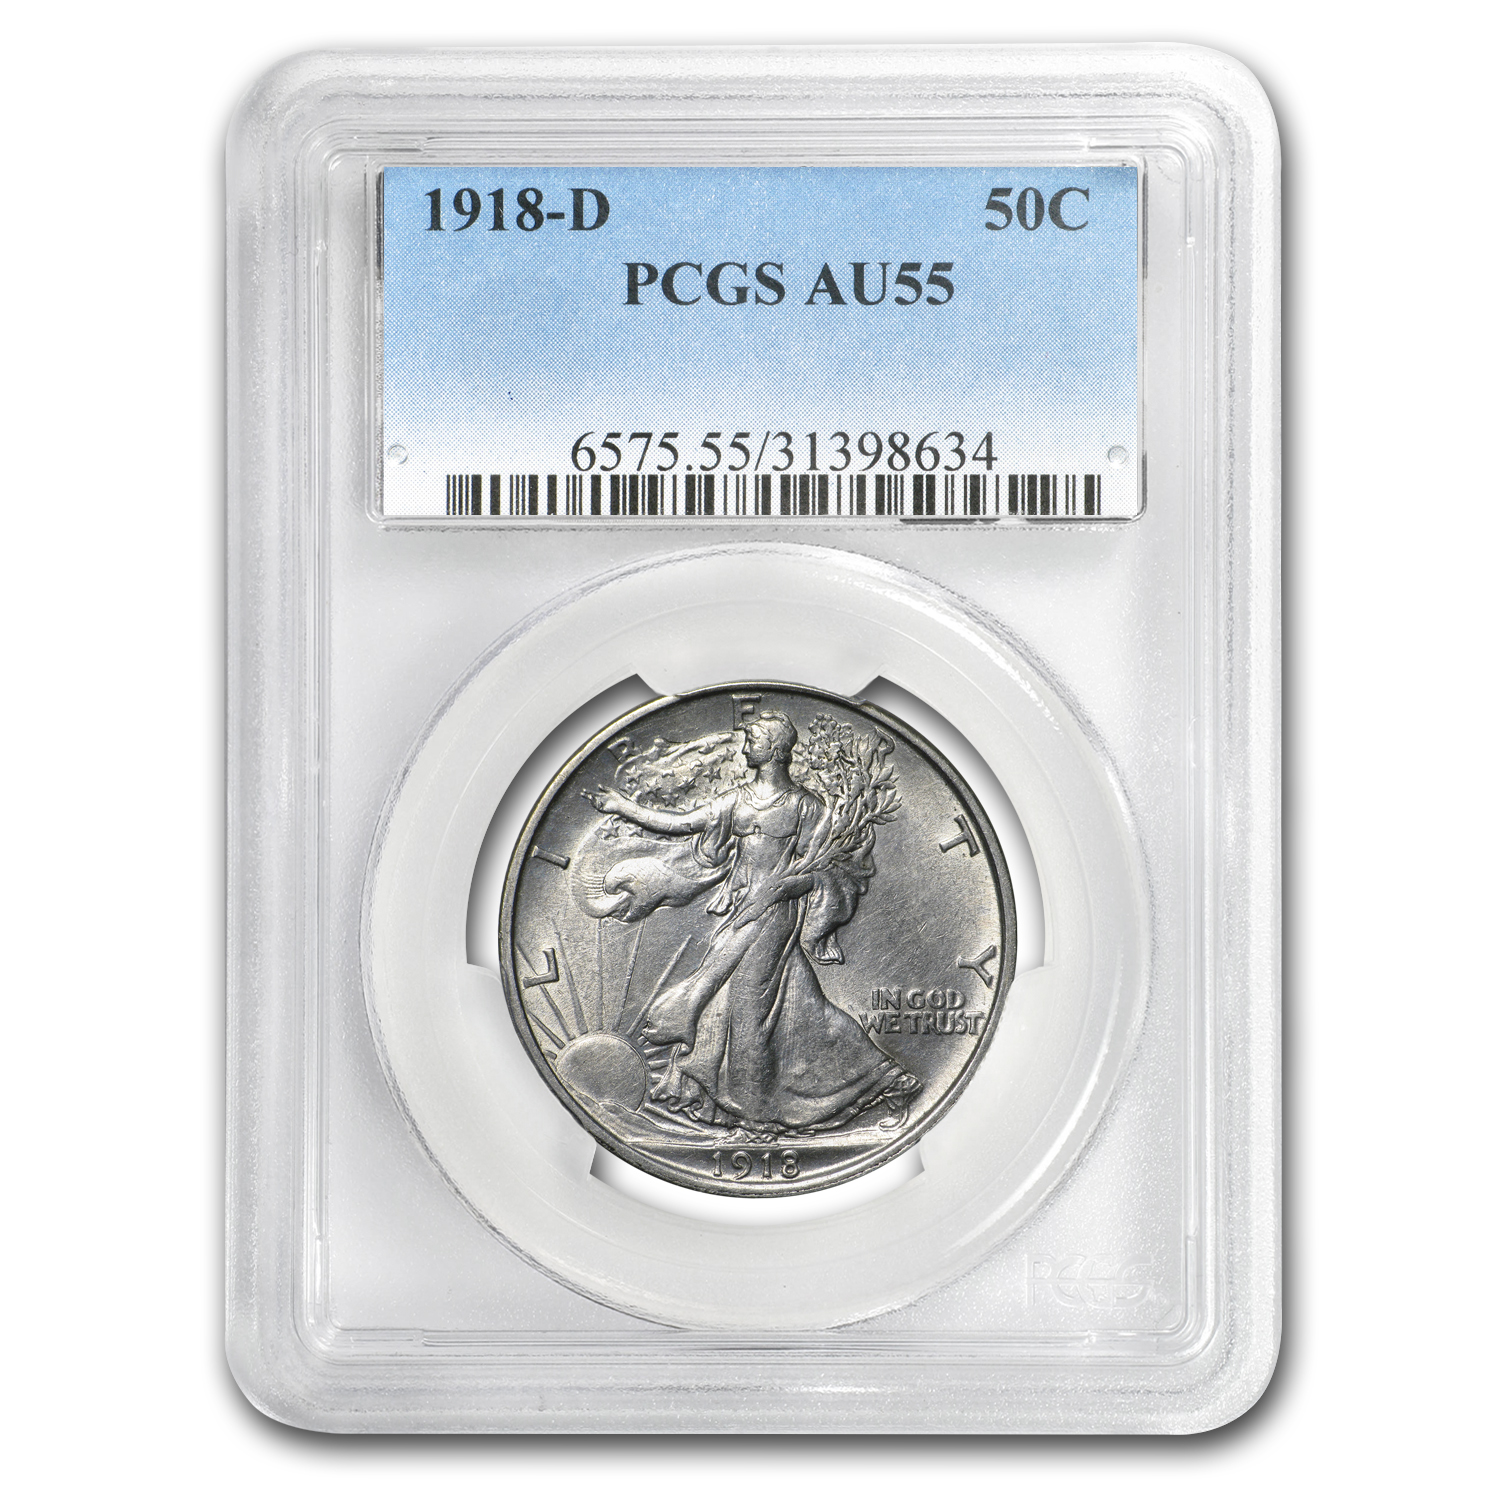 1918-D Walking Liberty Half-Dollar AU-55 PCGS